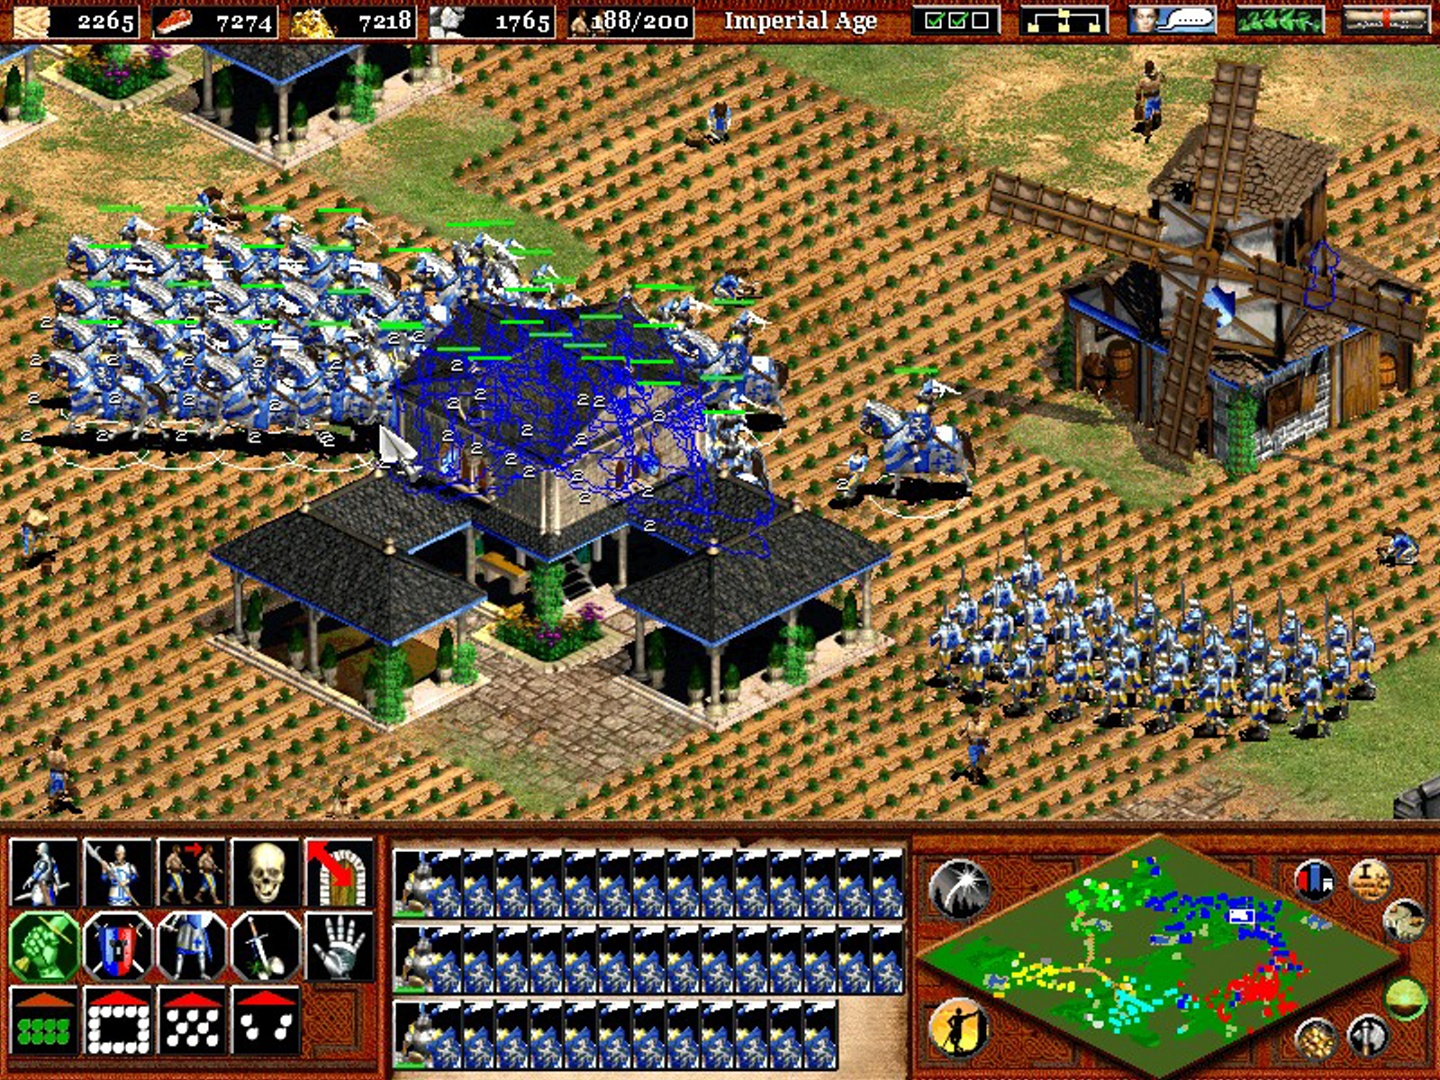 age of empires 2 the conquerors patch 1.0c mac